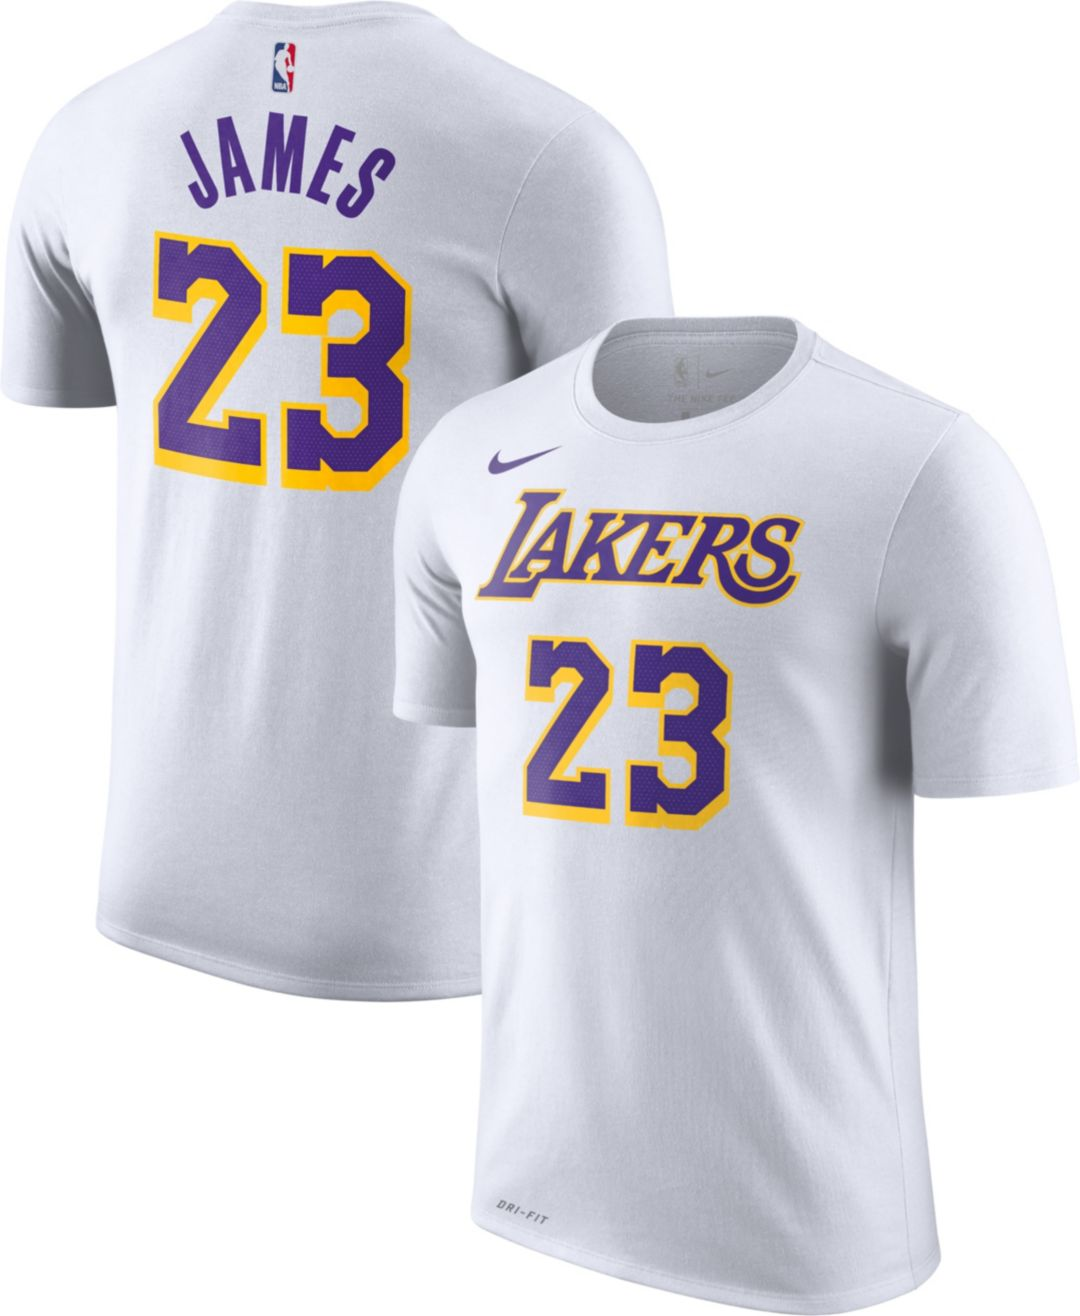 official photos bb2cb 4a51c Nike Men's Los Angeles Lakers LeBron James Dri-FIT White T-Shirt